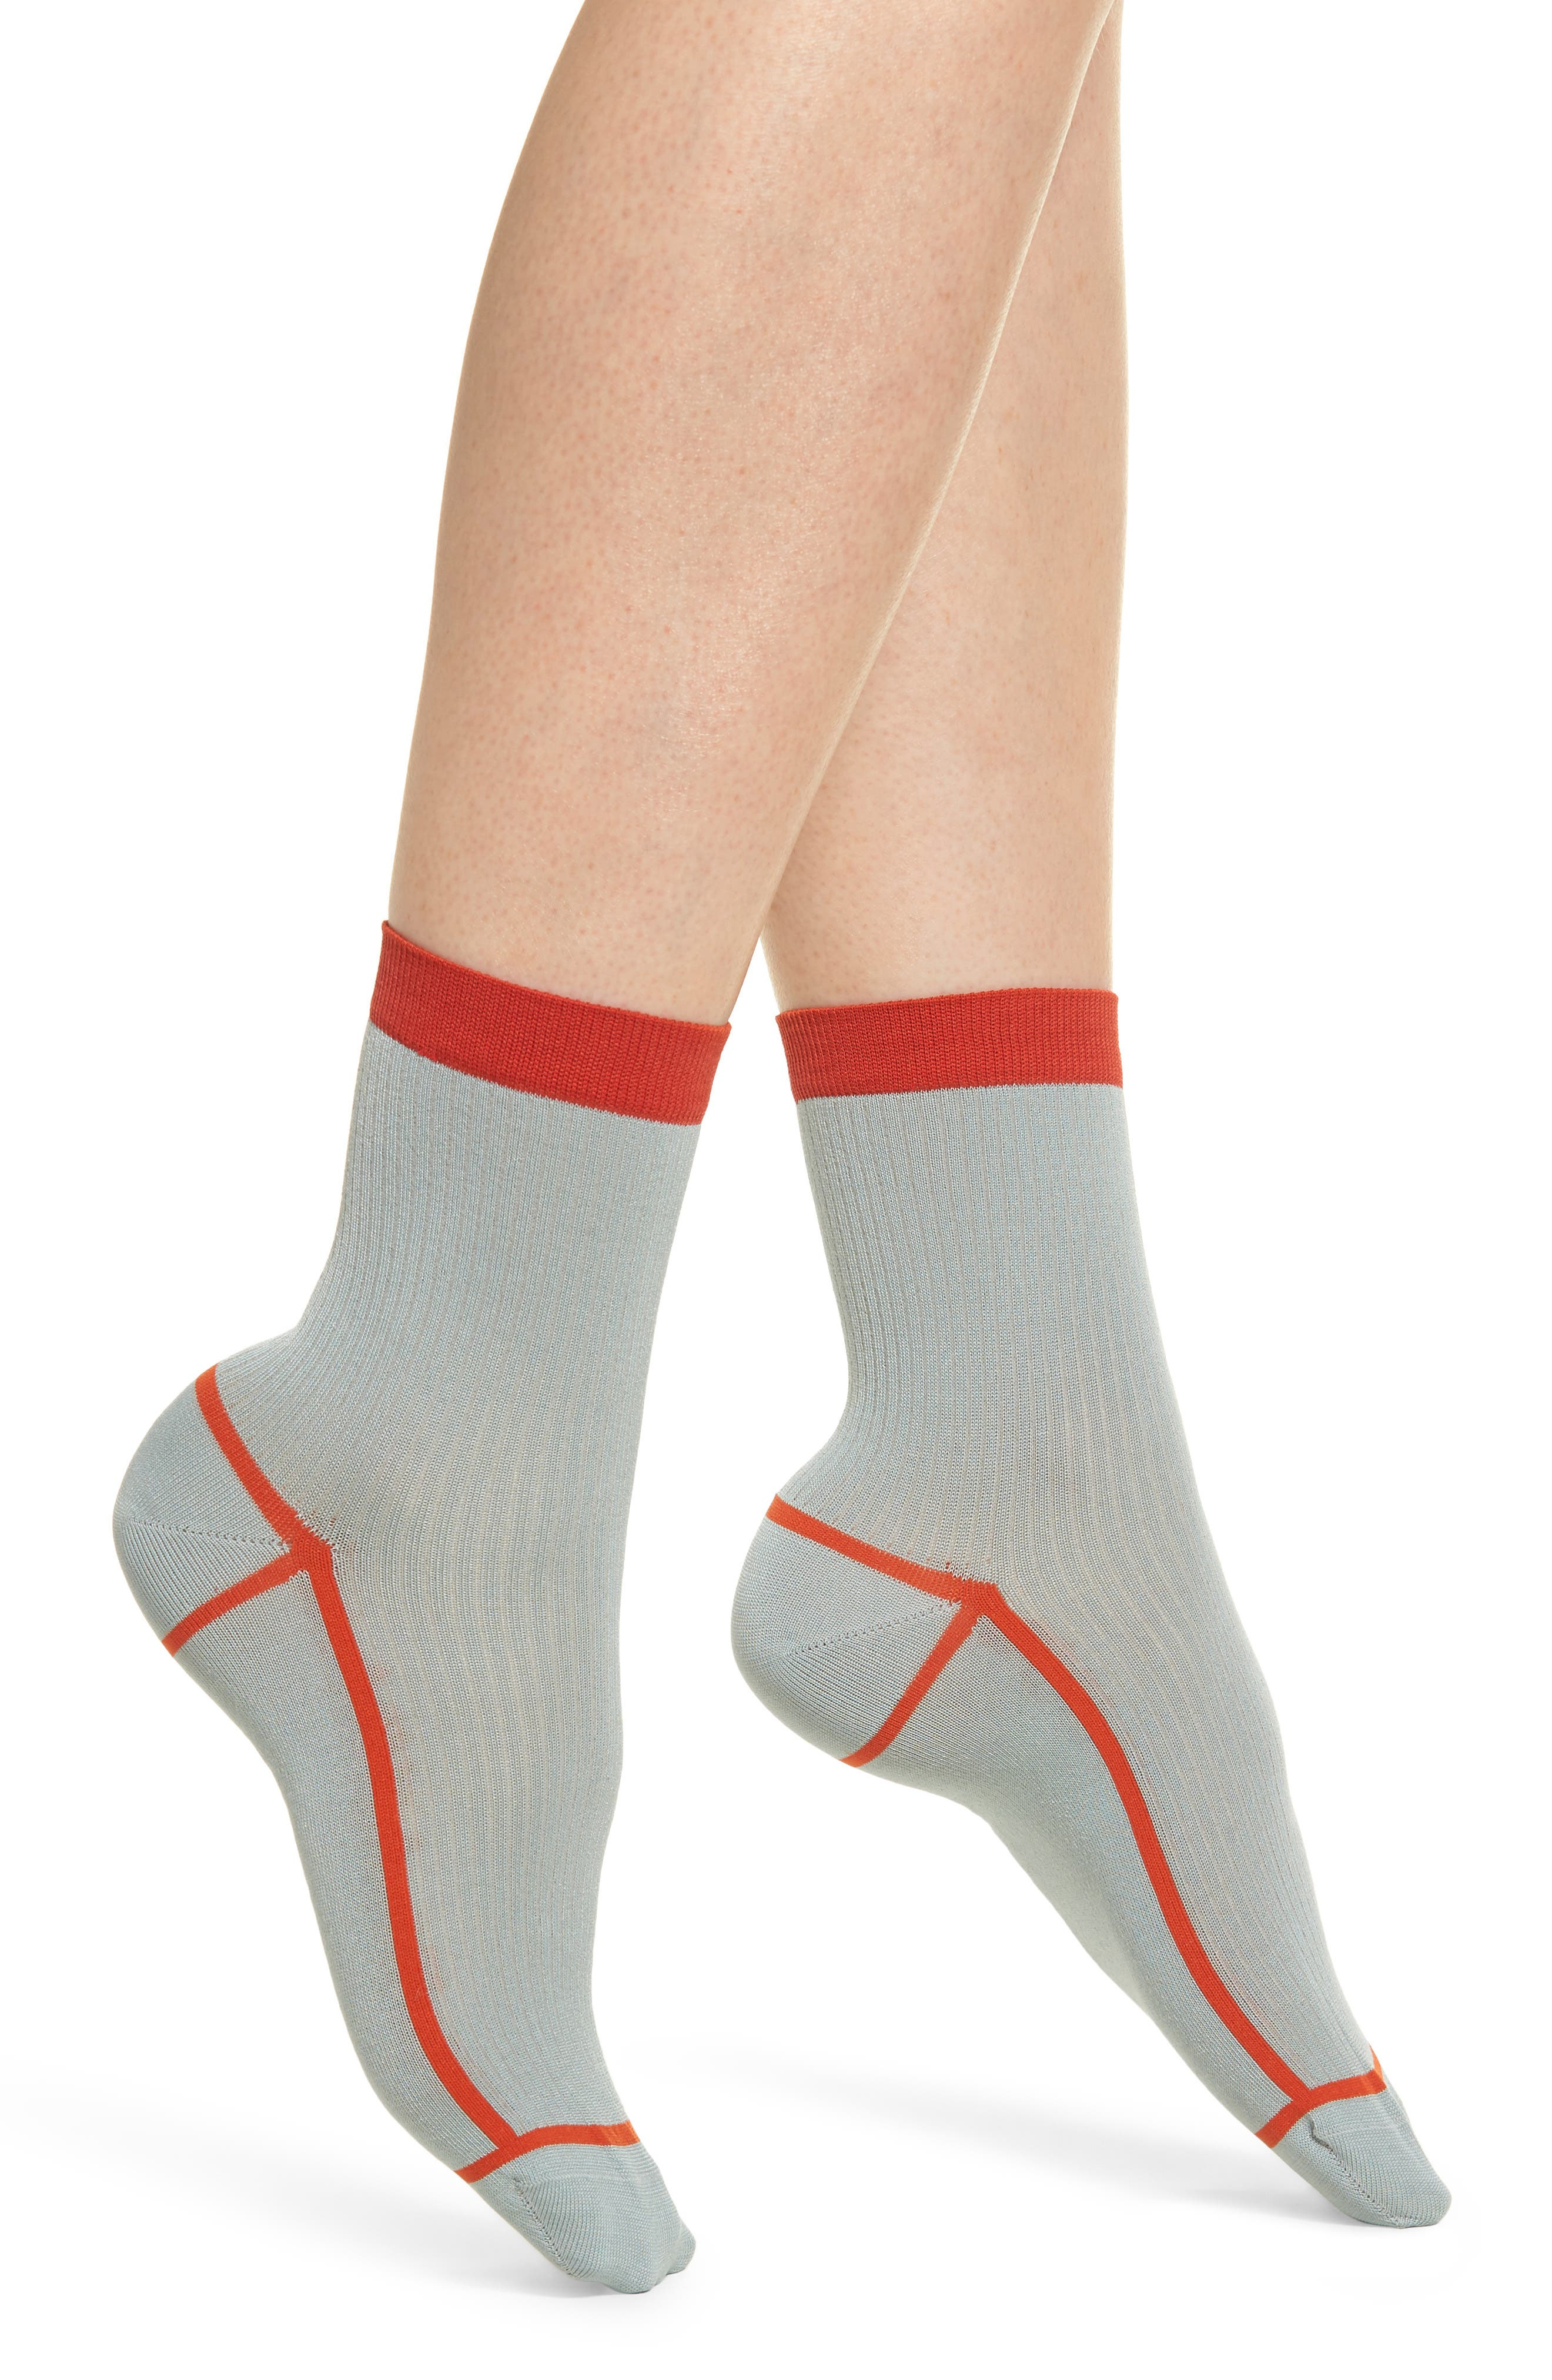 HAPPY SOCKS Hysteria Lily Ribbed Ankle Socks in Light Blue Pastel